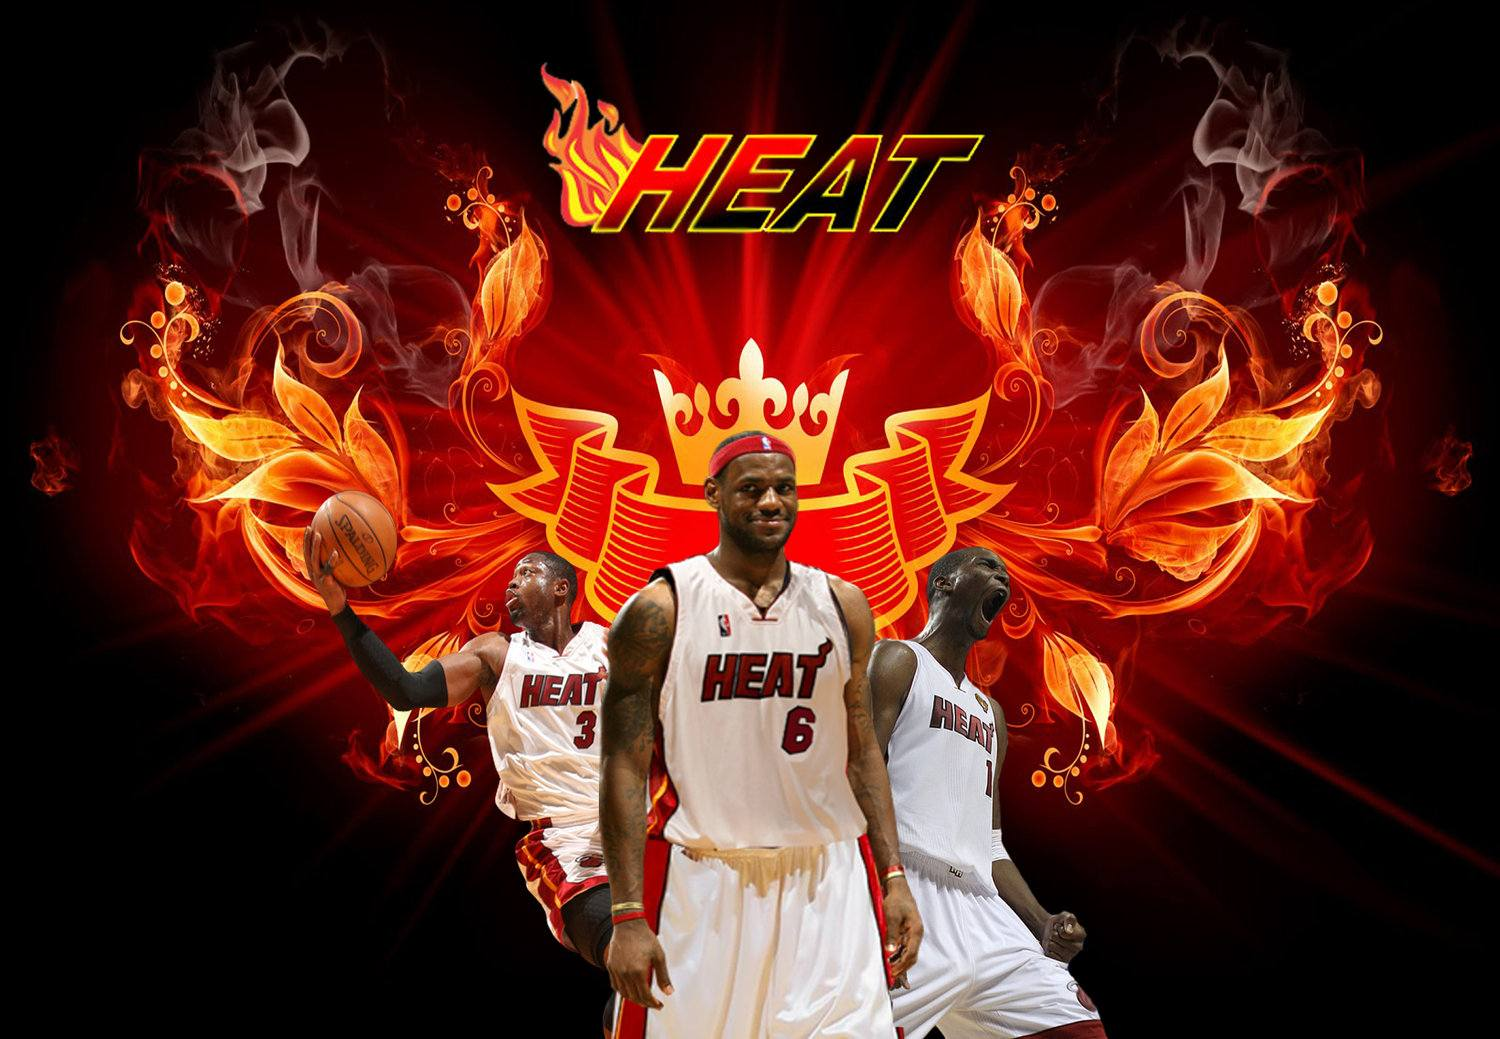 Miami heat wallpapers hd 2016 wallpaper cave - Miami heat wallpaper android download ...